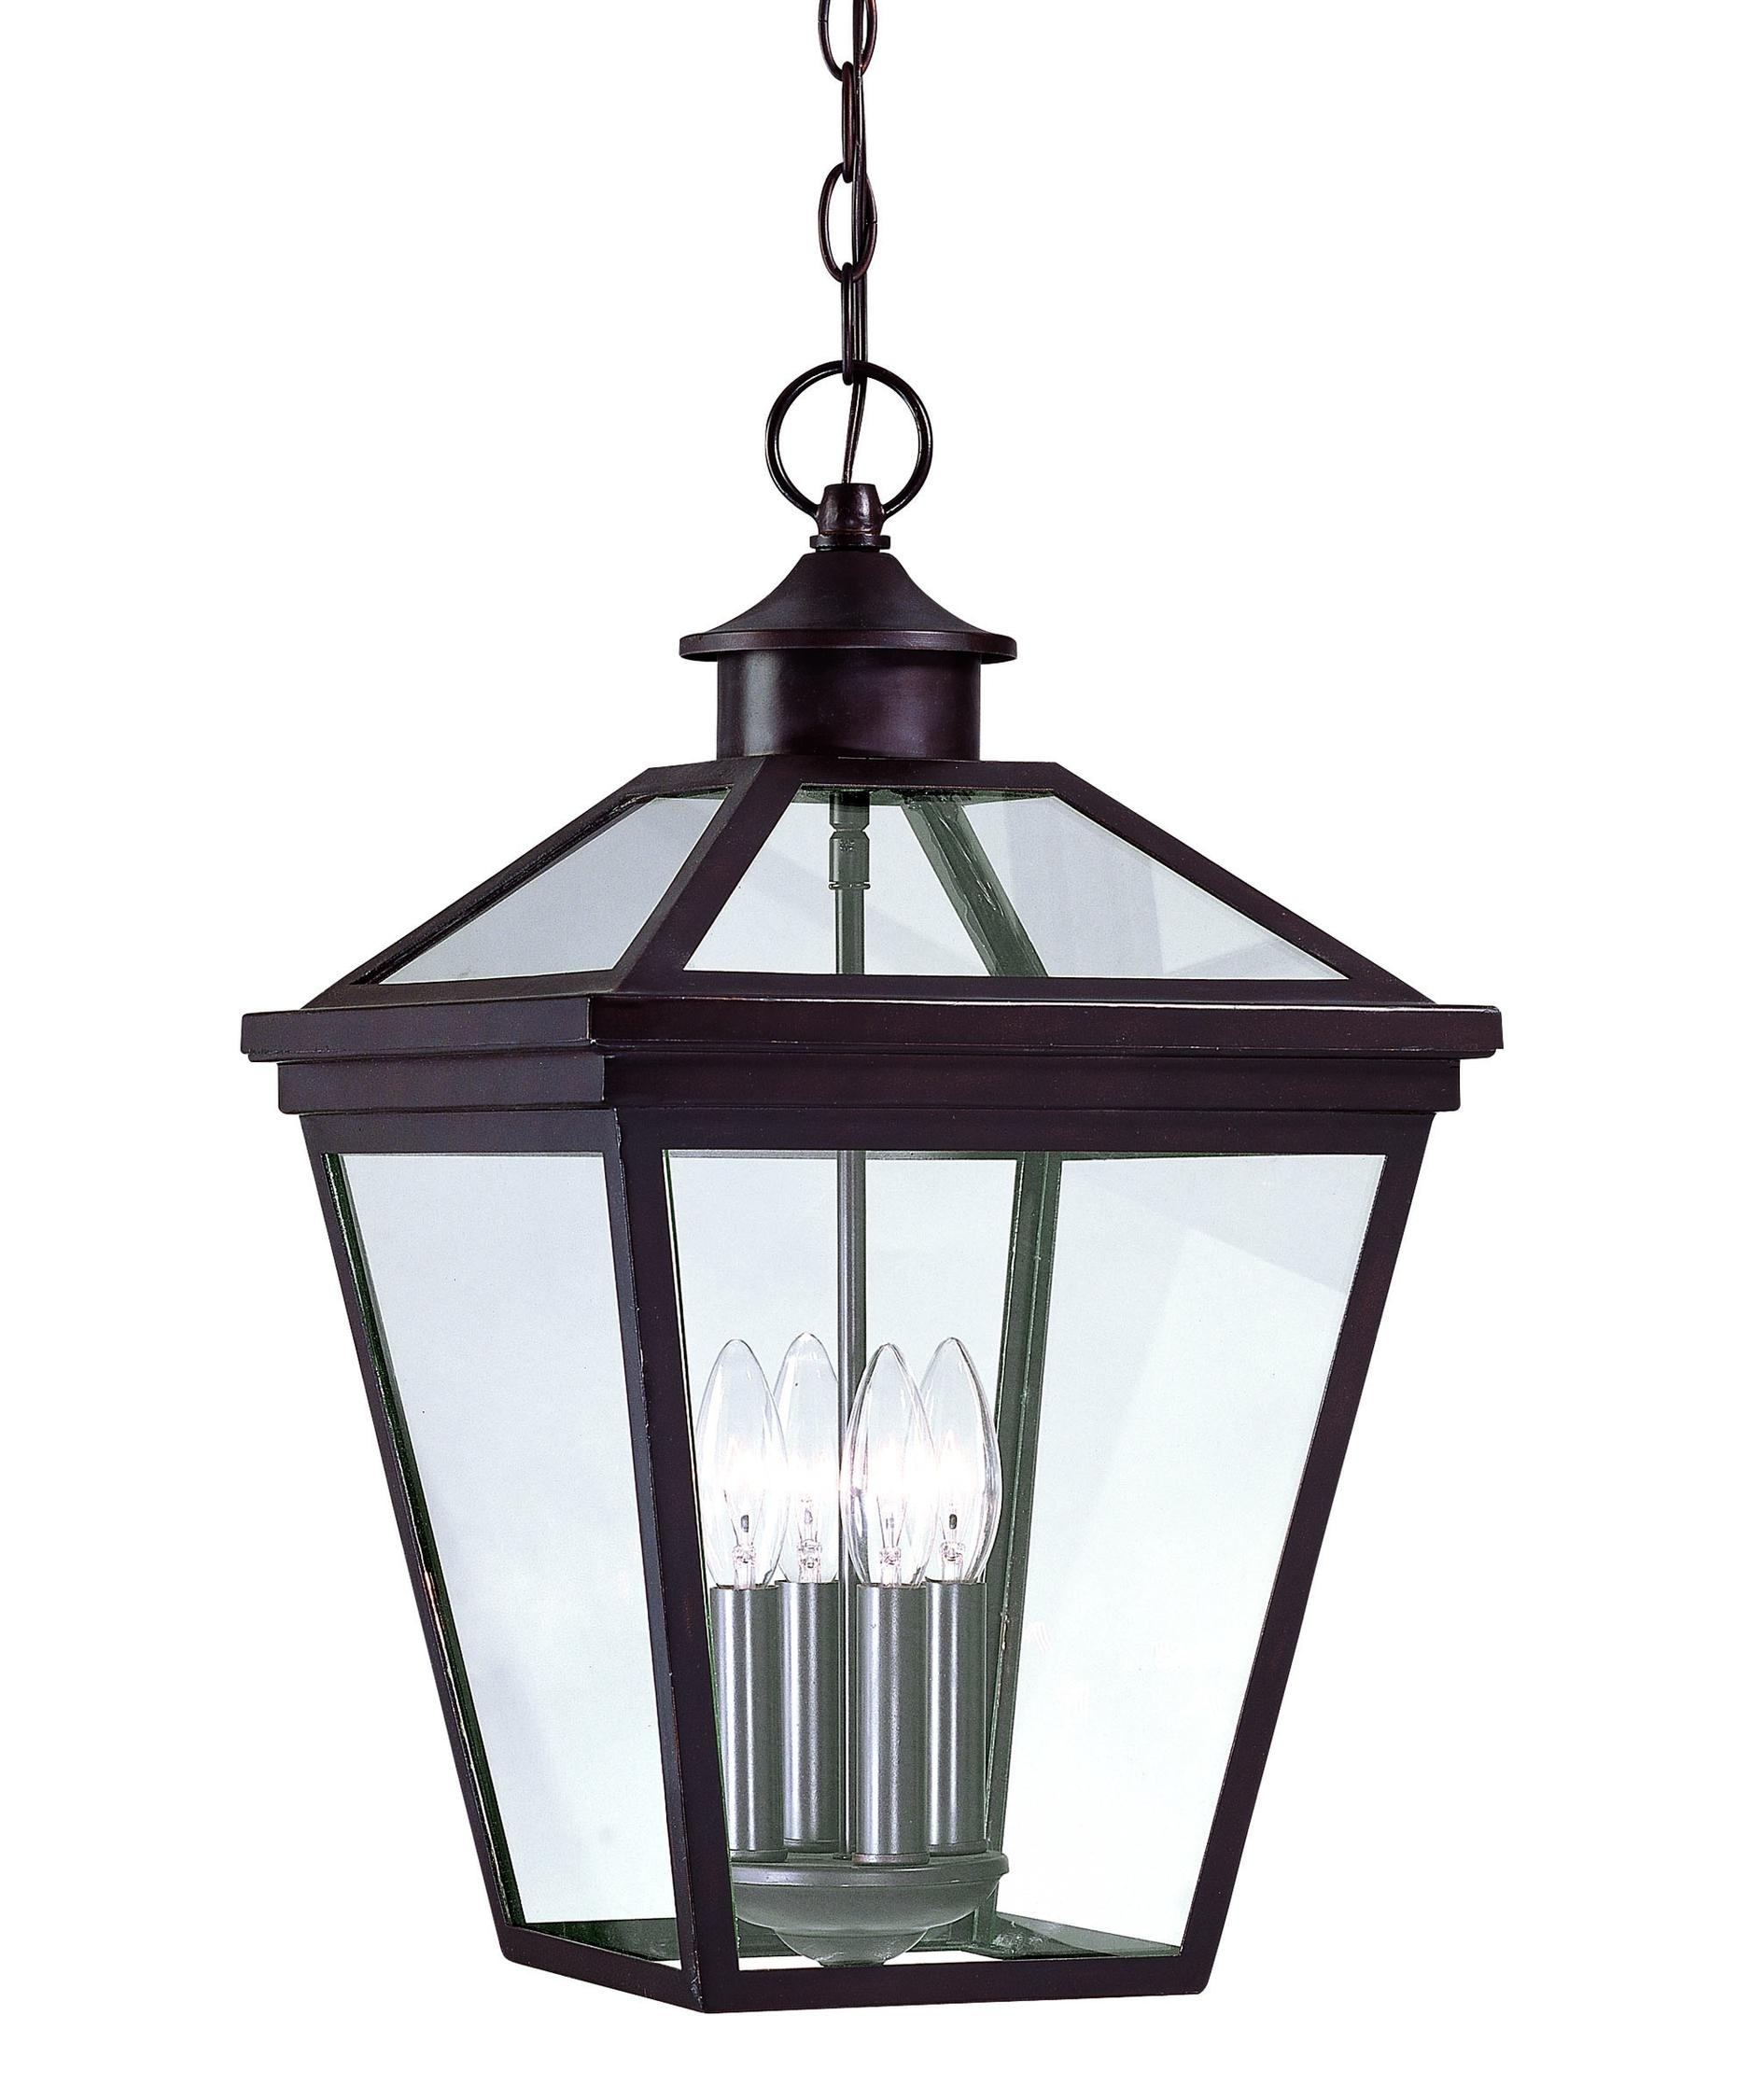 Outdoor Hanging Lanterns 15 Best Ideas Of Outdoor Hanging Lanterns From Australia